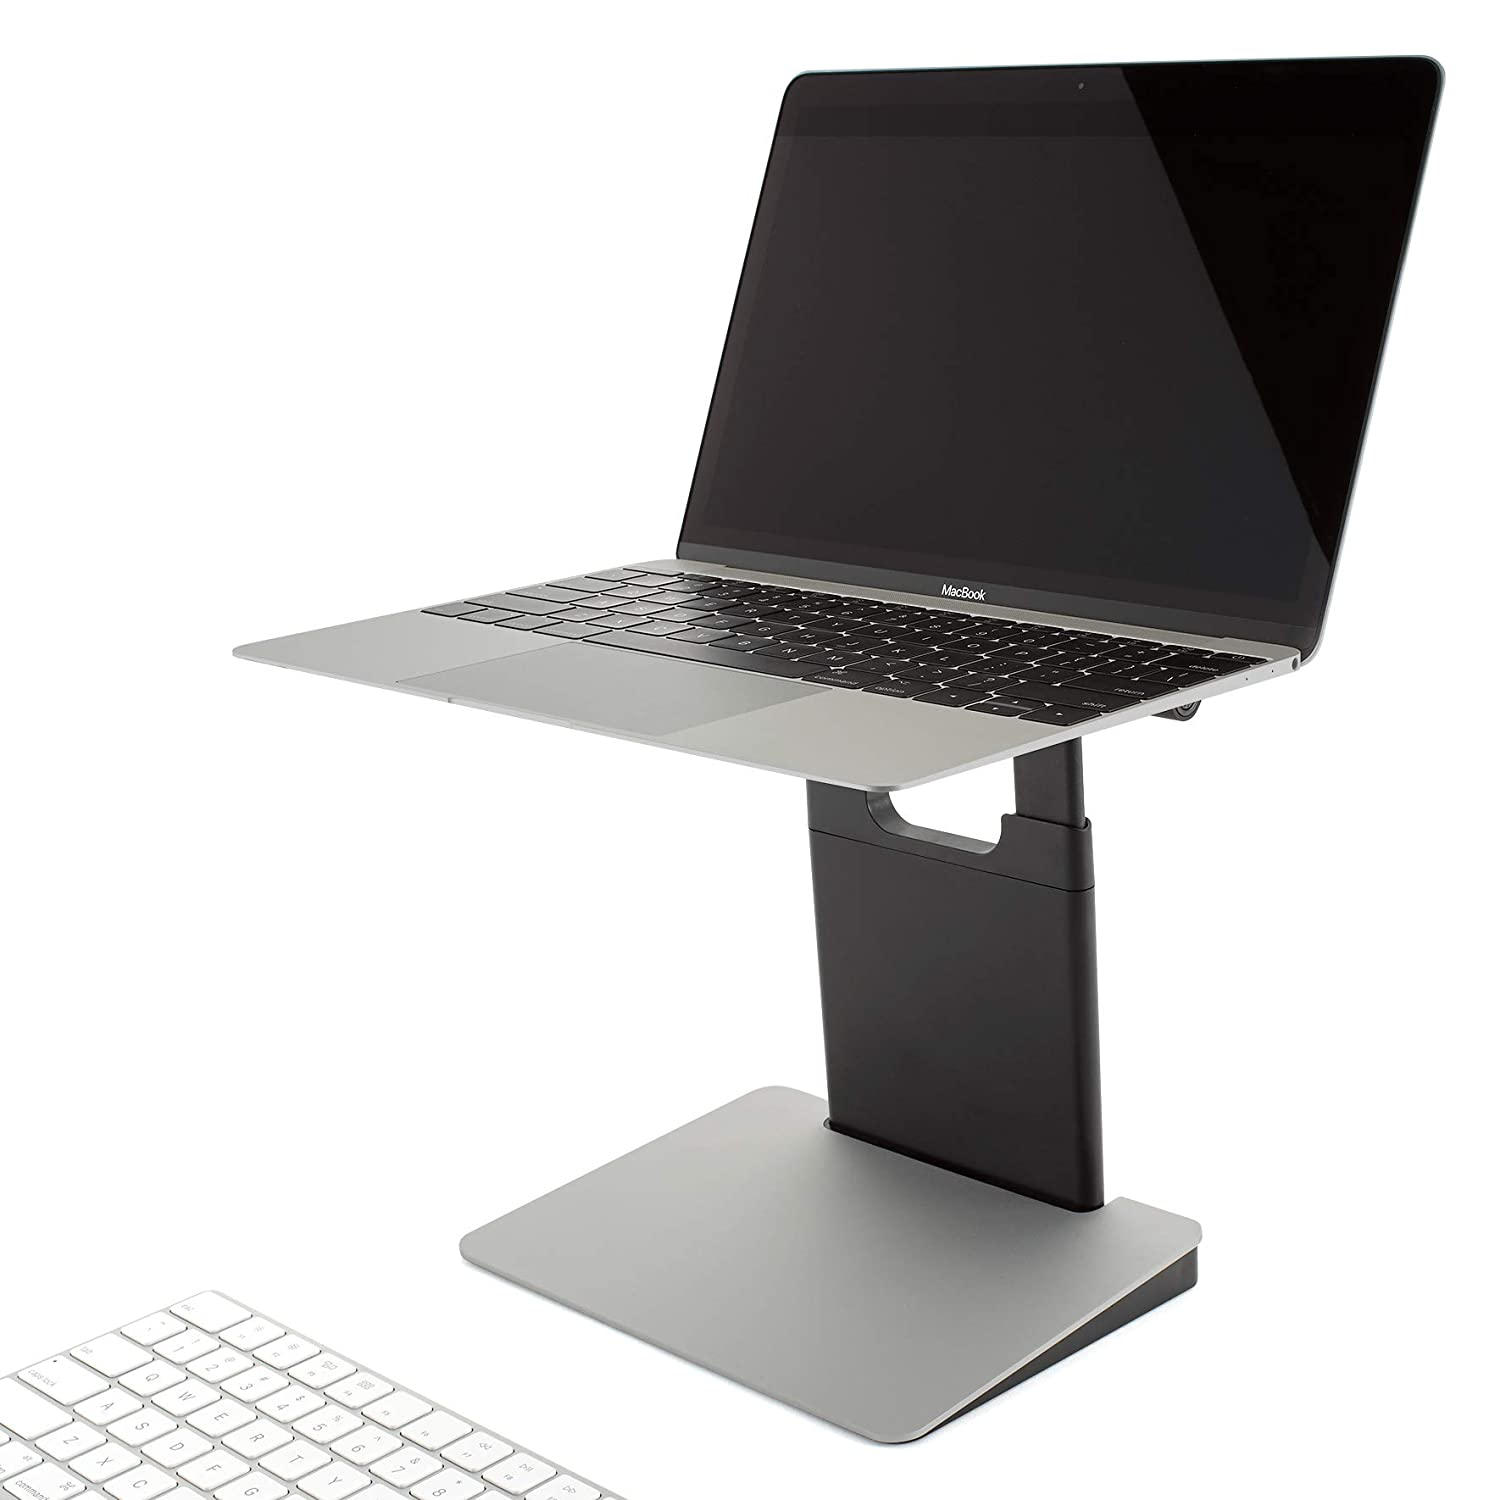 "TINY TOWER Adjustable and Portable Laptop Stand. Foldable and Collapsible Holder and Riser. Compatible with All 11"", 13"" and 15"" laptops and notebooks."